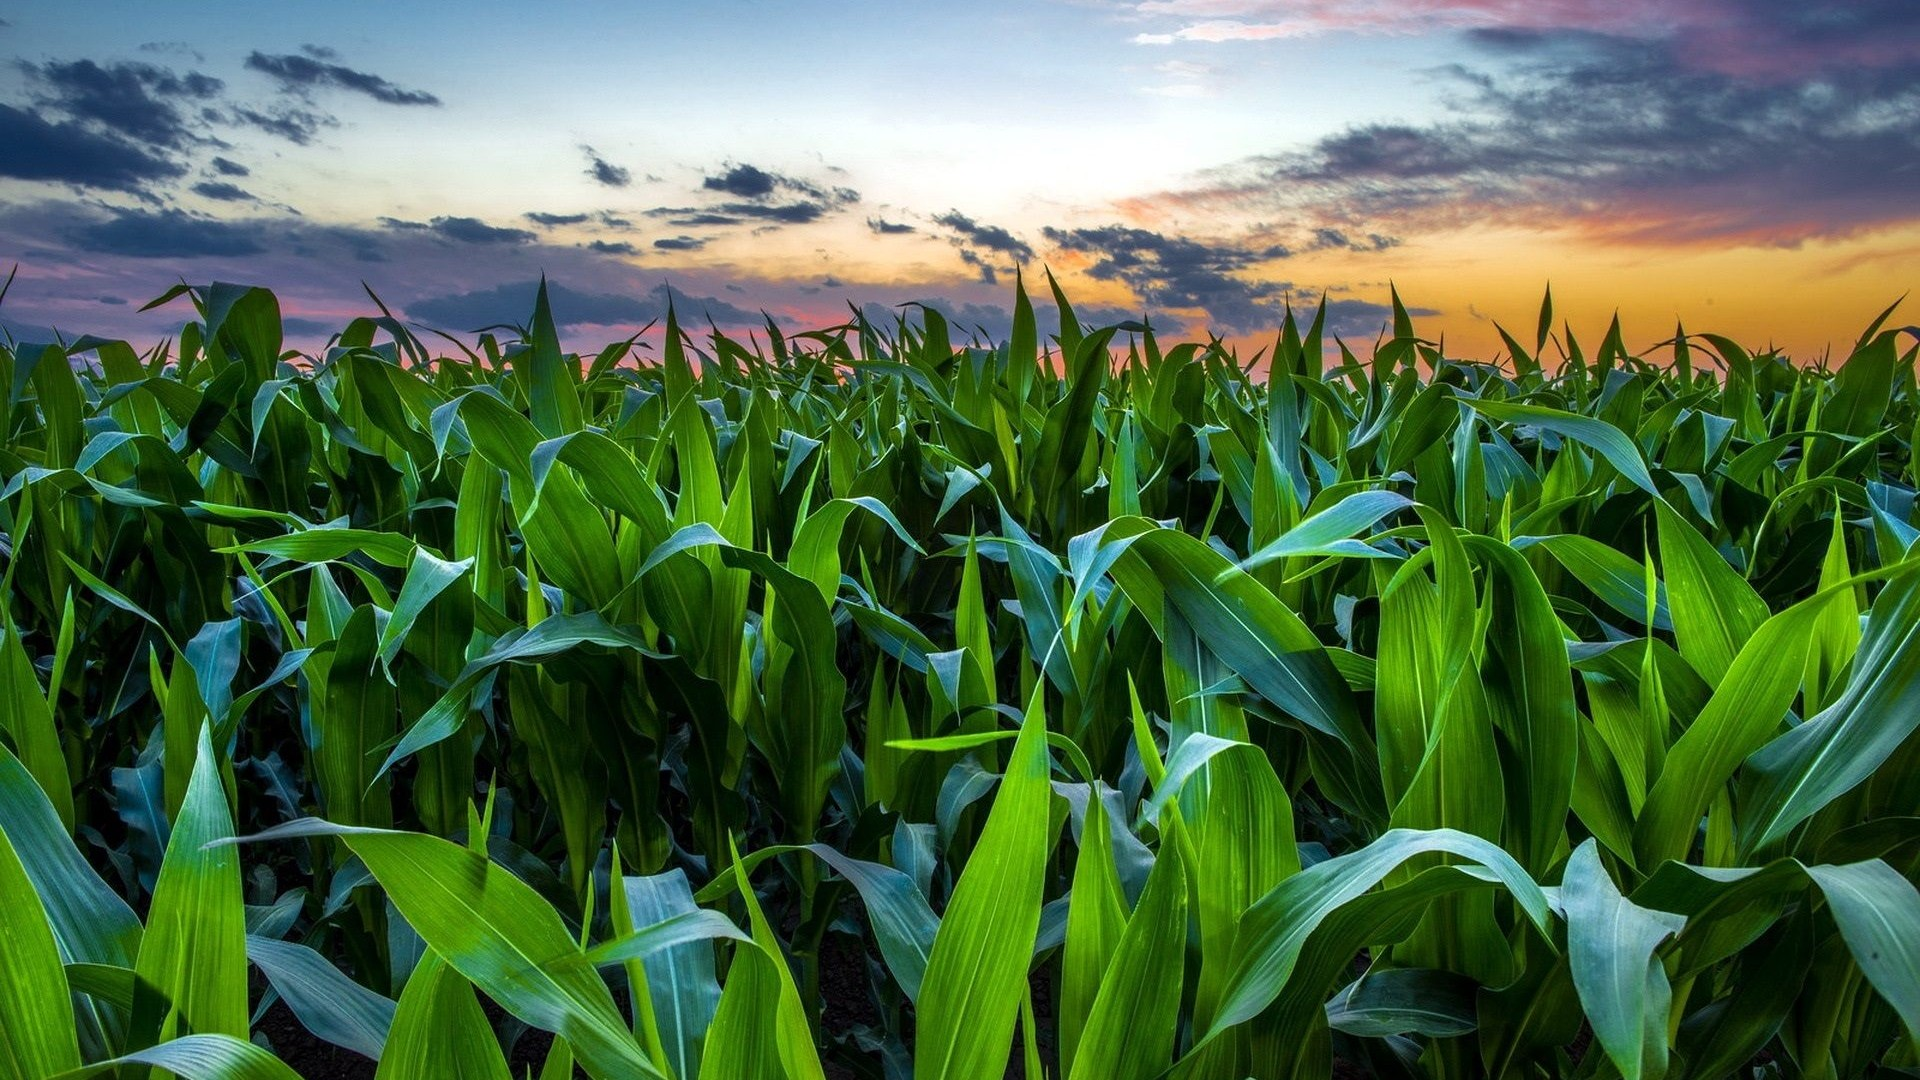 Corn Field Full HD Wallpaper and Background Image ...